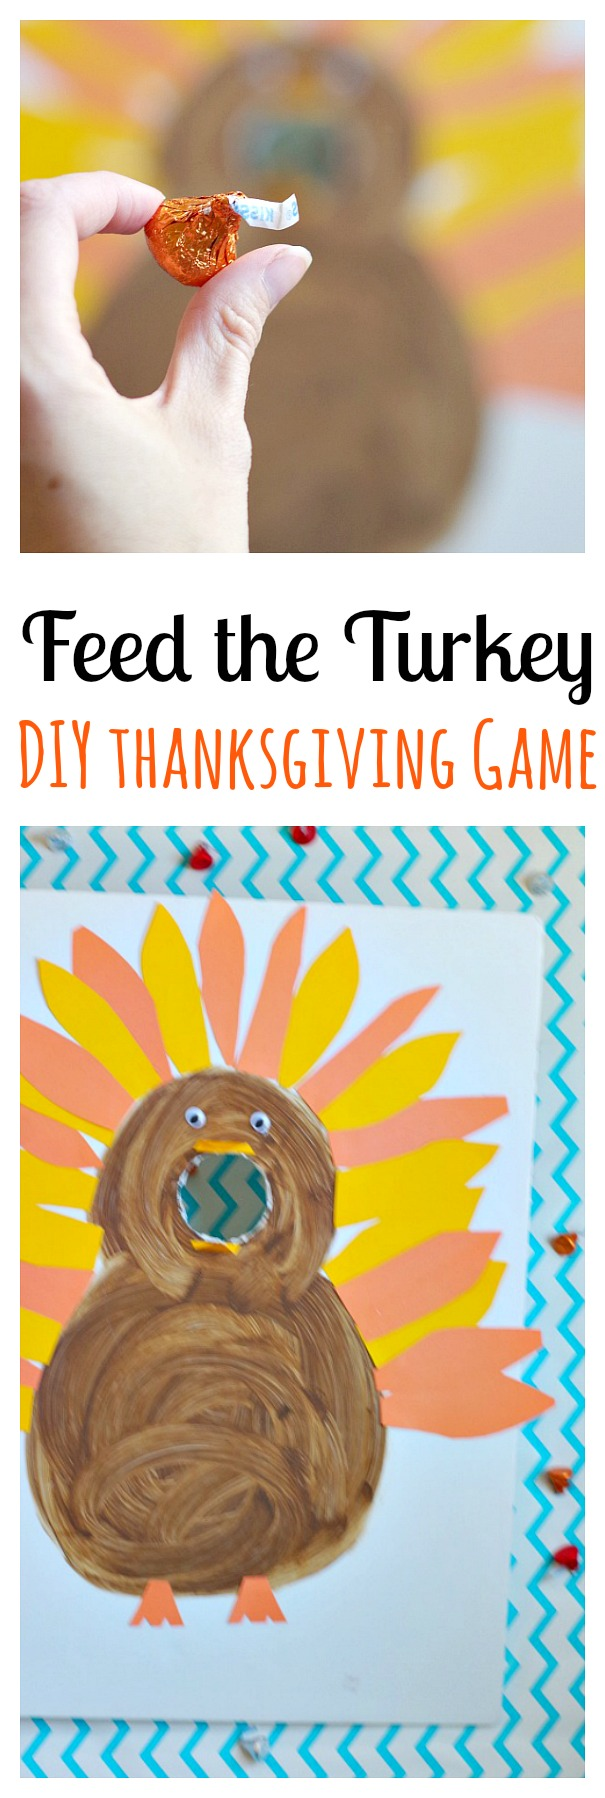 Feed the Turkey DIY Thanksgiving Game